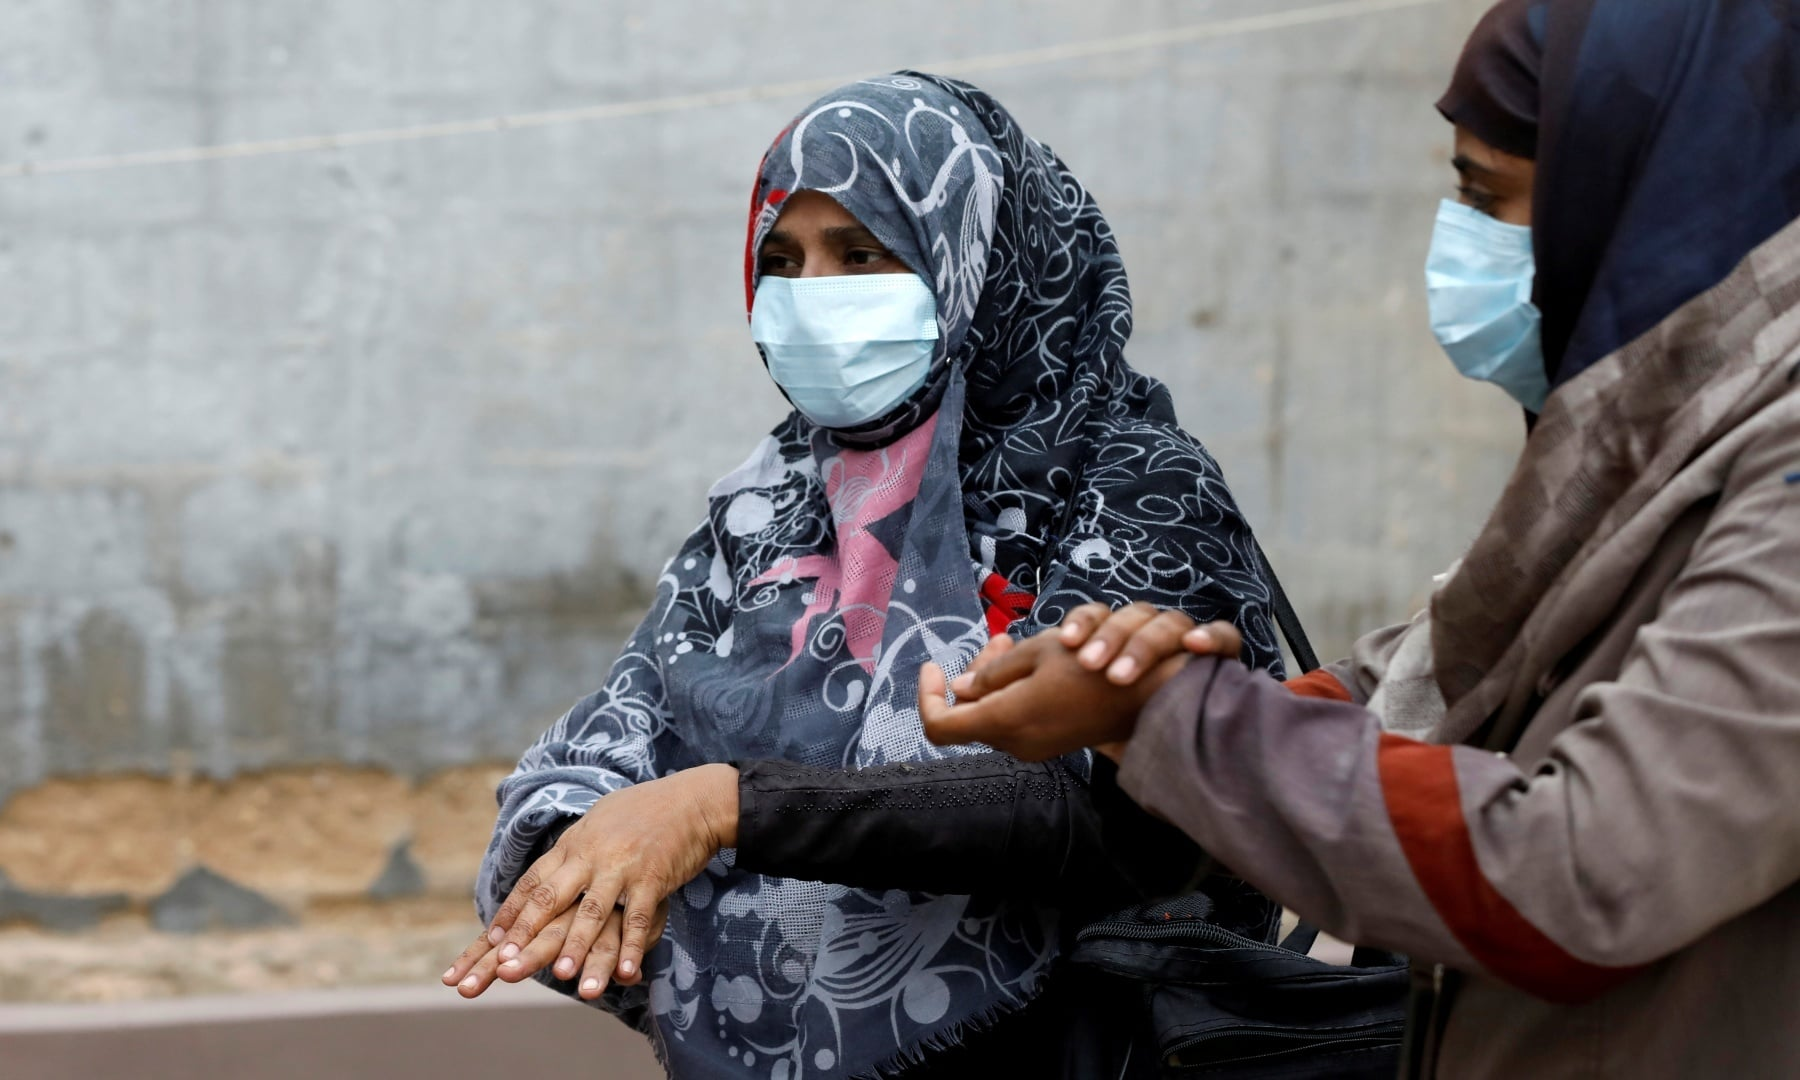 Vaccinators wear protective masks as they sanitise their hands before administering polio vaccine drops, during an anti-polio campaign in Karachi. — Reuters